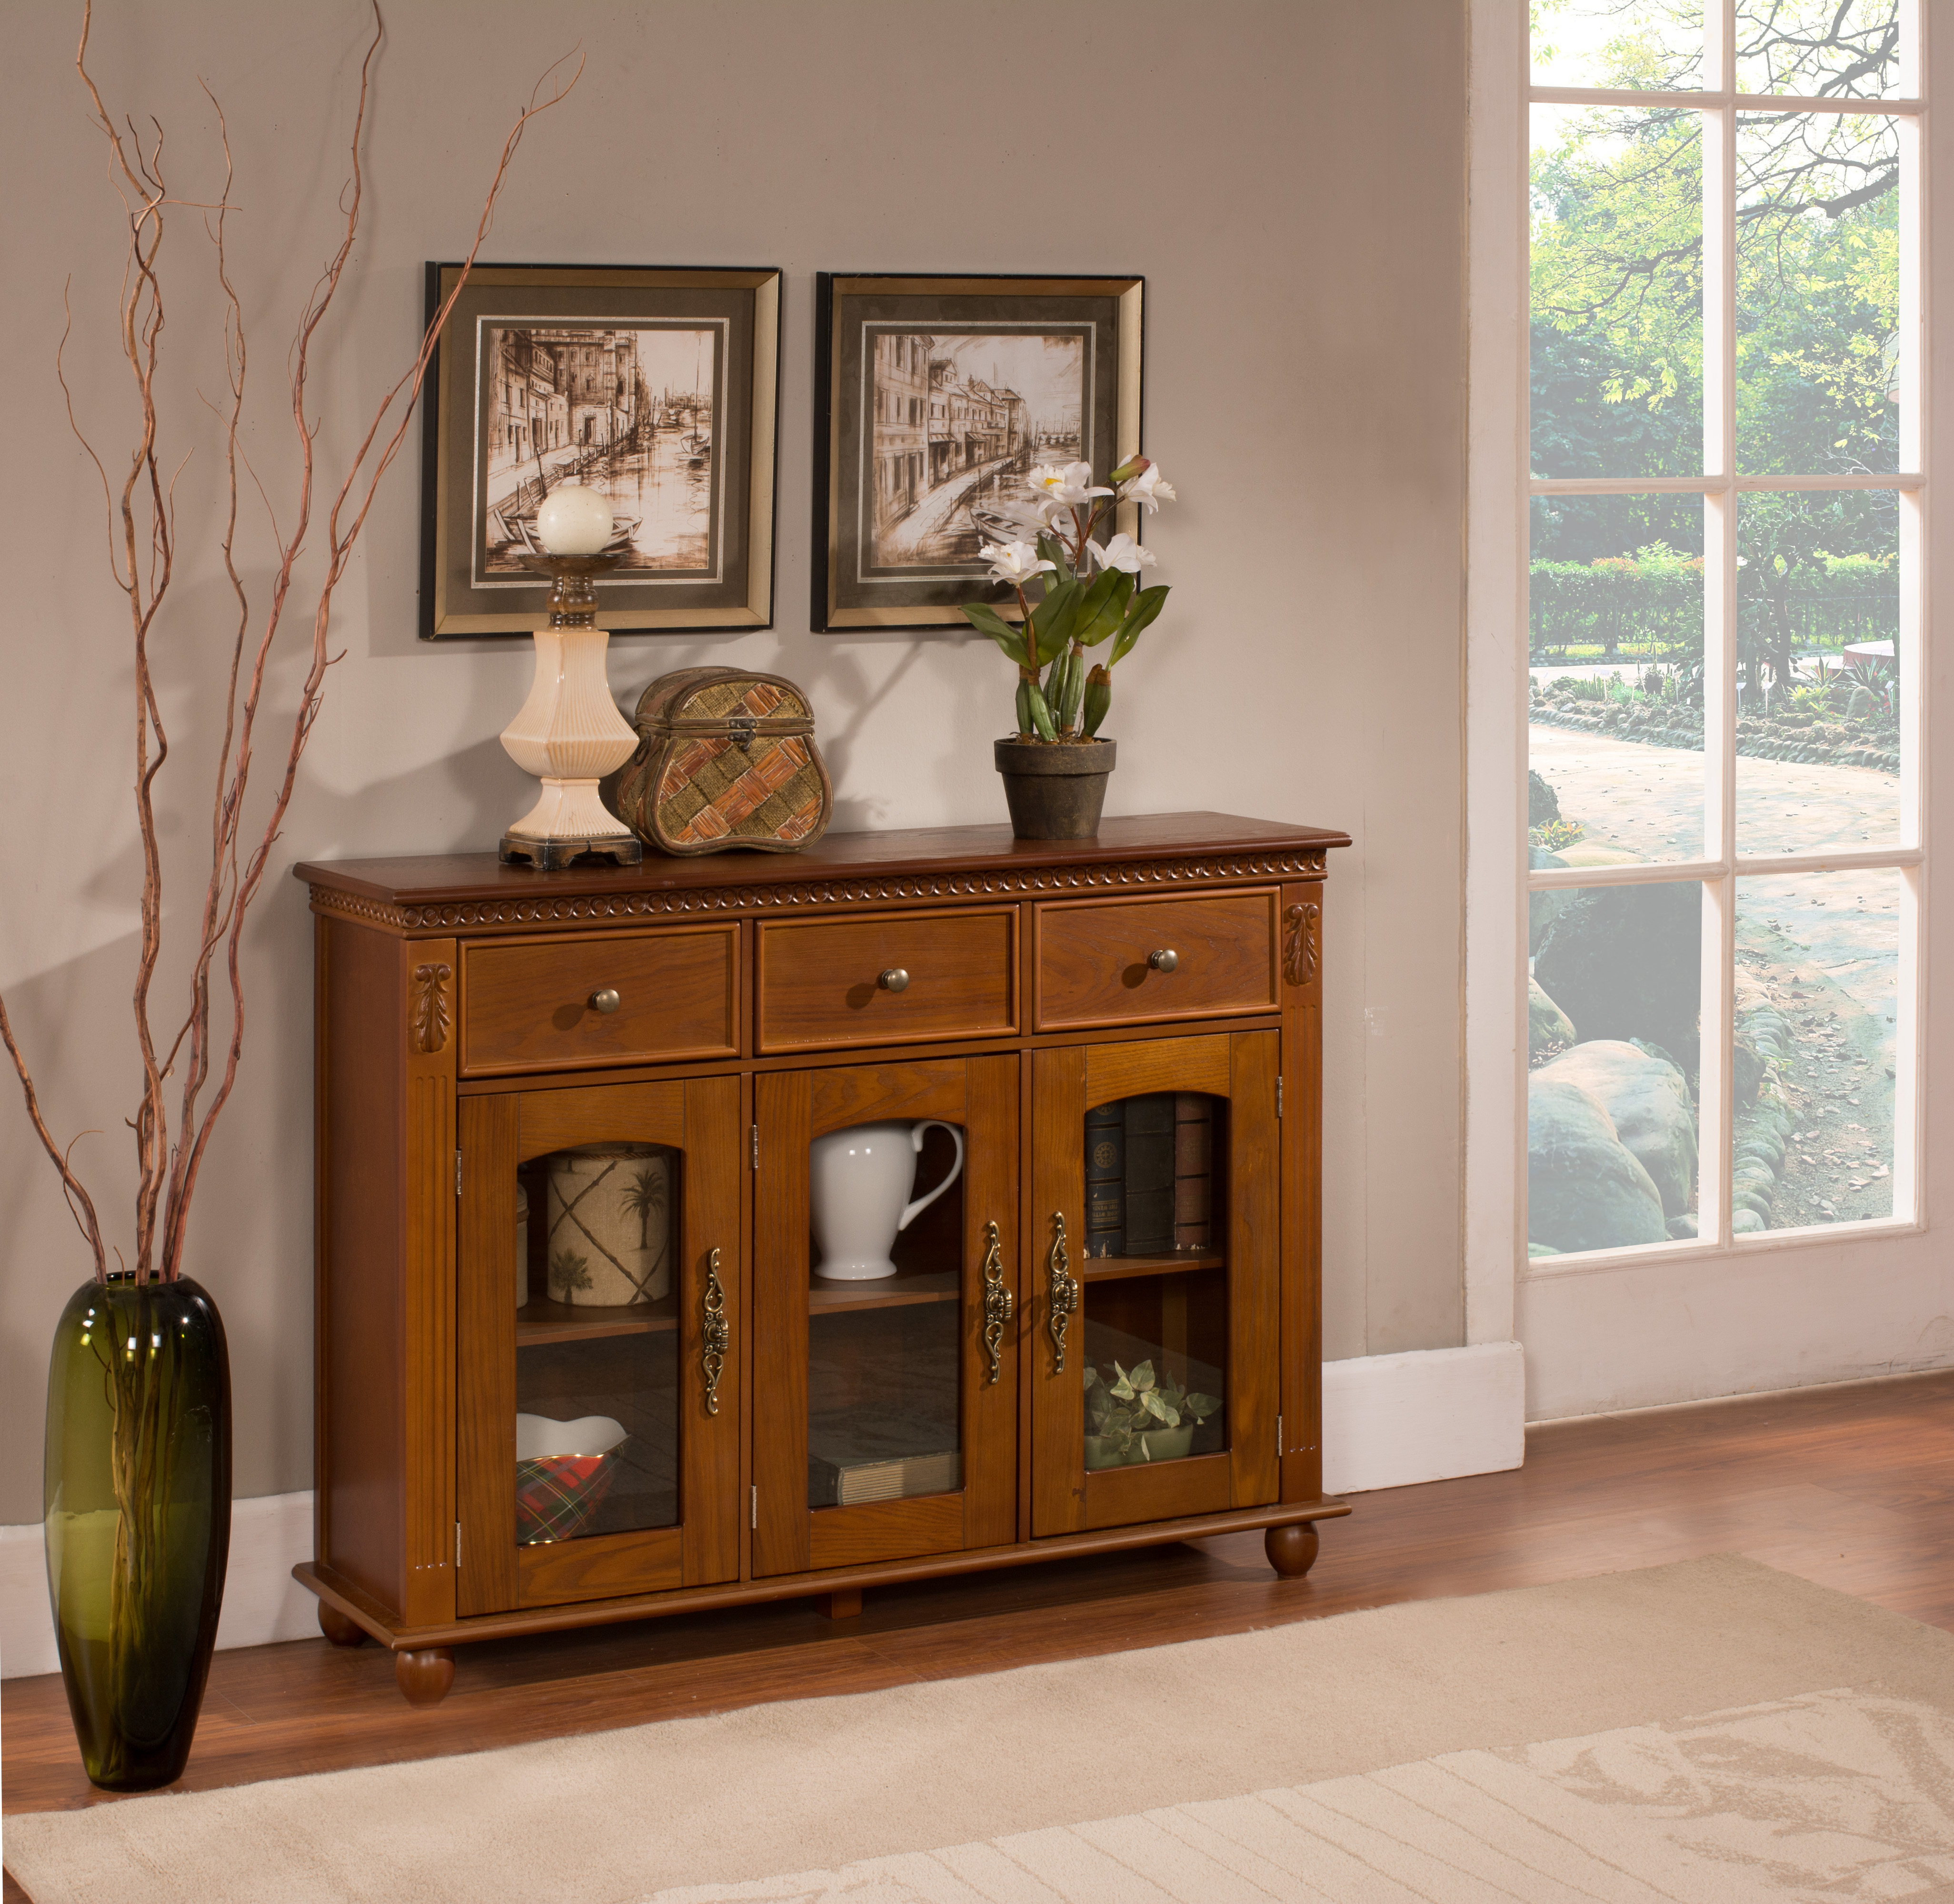 William Walnut Wood Contemporary Sideboard Buffet Console Within Contemporary Wooden Buffets With One Side Door Storage Cabinets And Two Drawers (View 19 of 20)